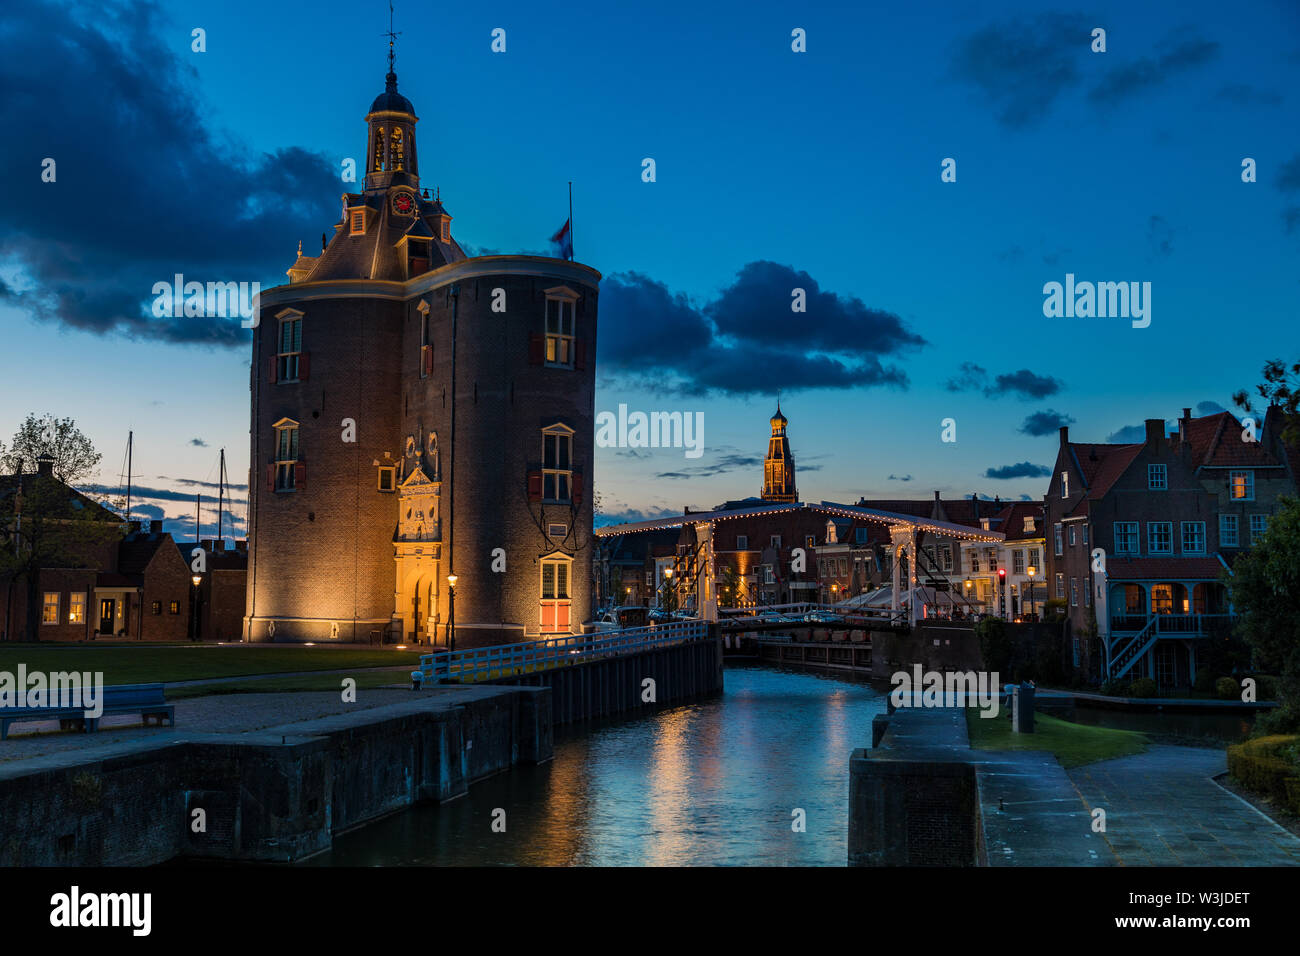 Historic Drommedaris Gate - city gate of Enkhuizen in the Netherlands, at blue hour - dusk - Stock Image